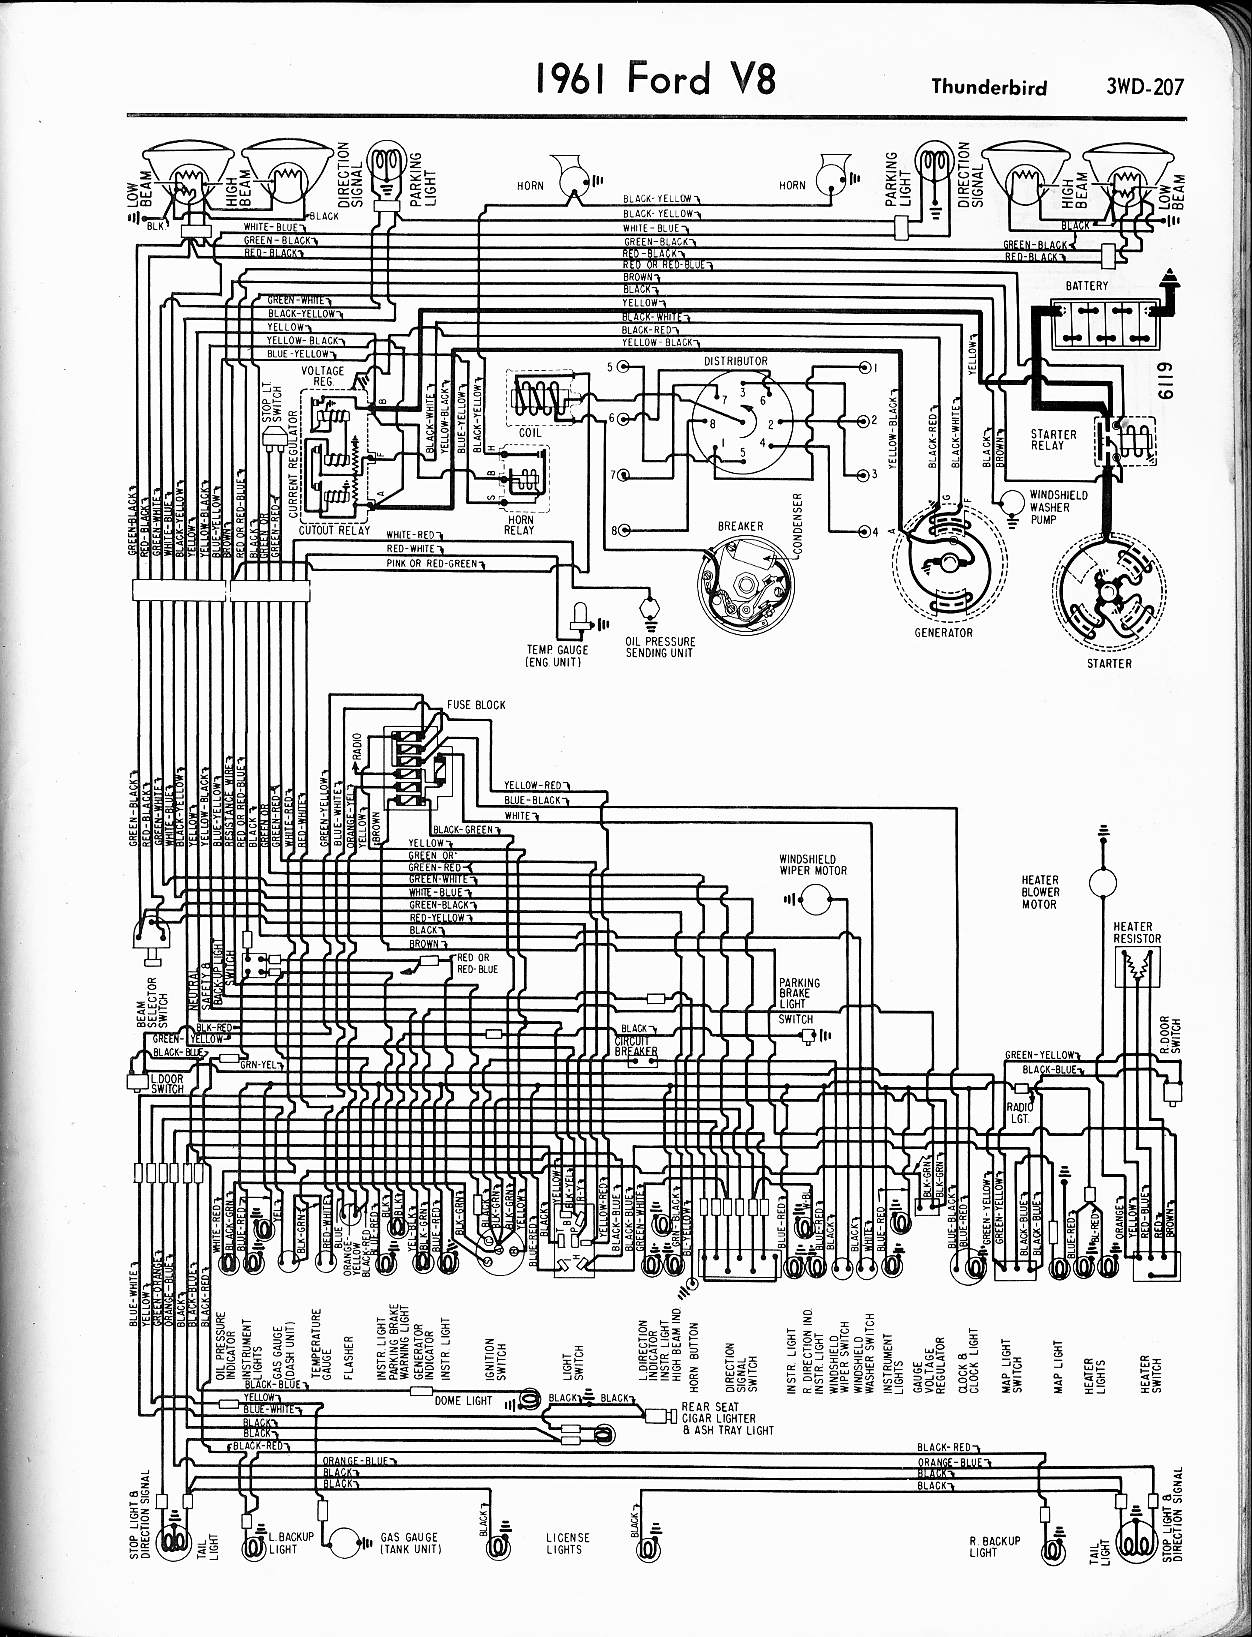 1979 f 100 wiring diagrams 1963 ford truck f 100 wiring diagrams 1961 1963 ford f 100 wiring diagram #2